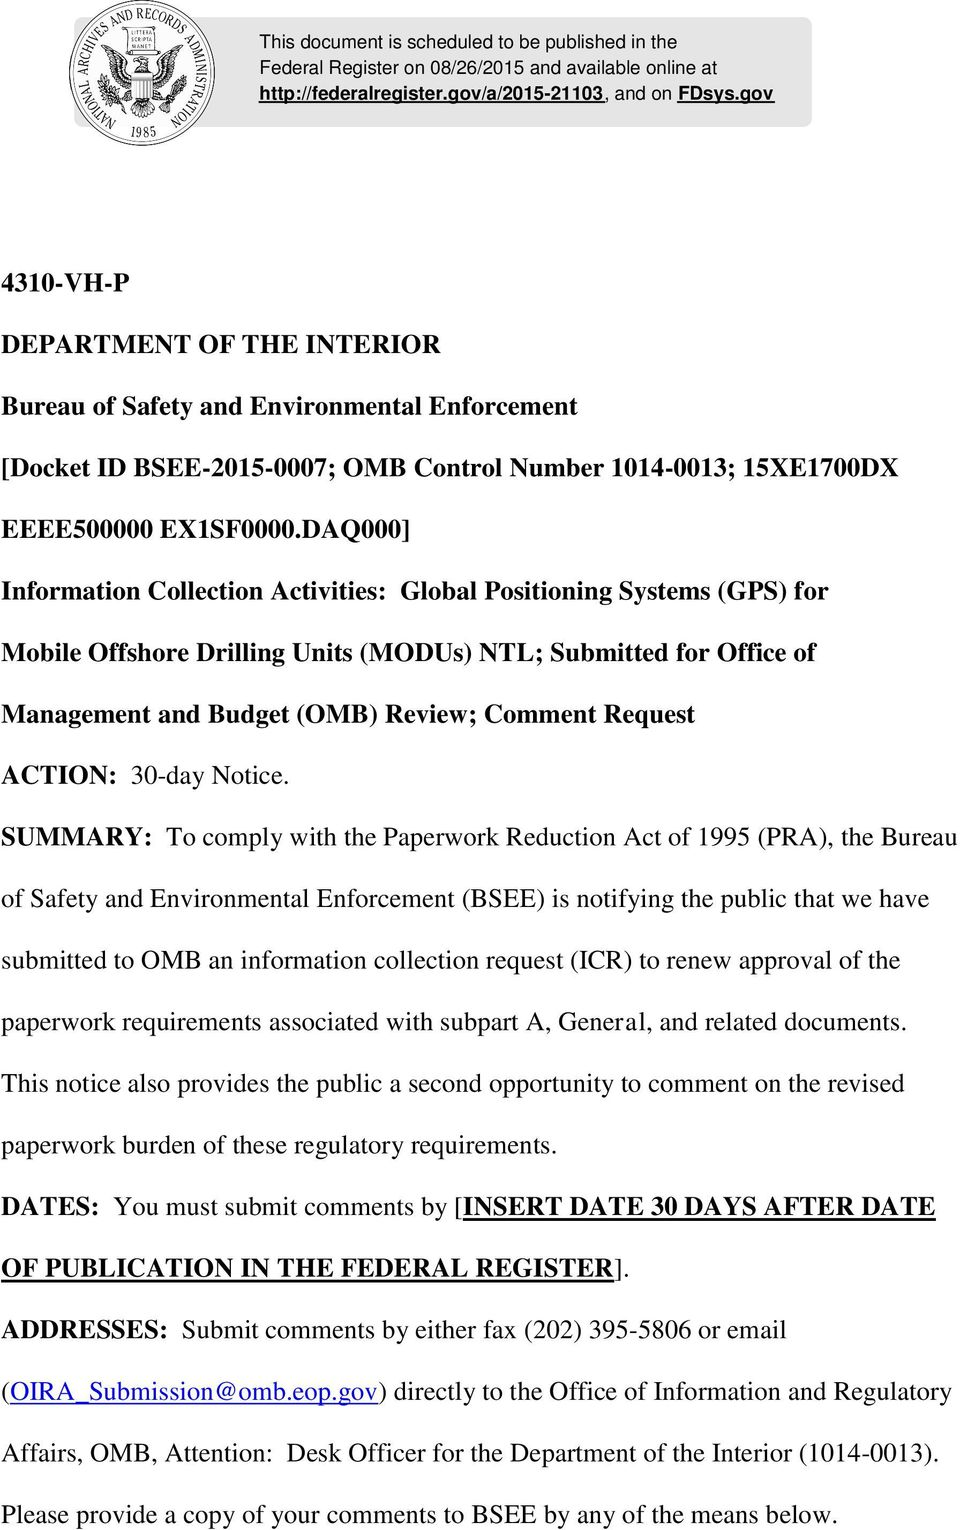 DAQ000] Information Collection Activities: Global Positioning Systems (GPS) for Mobile Offshore Drilling Units (MODUs) NTL; Submitted for Office of Management and Budget (OMB) Review; Comment Request